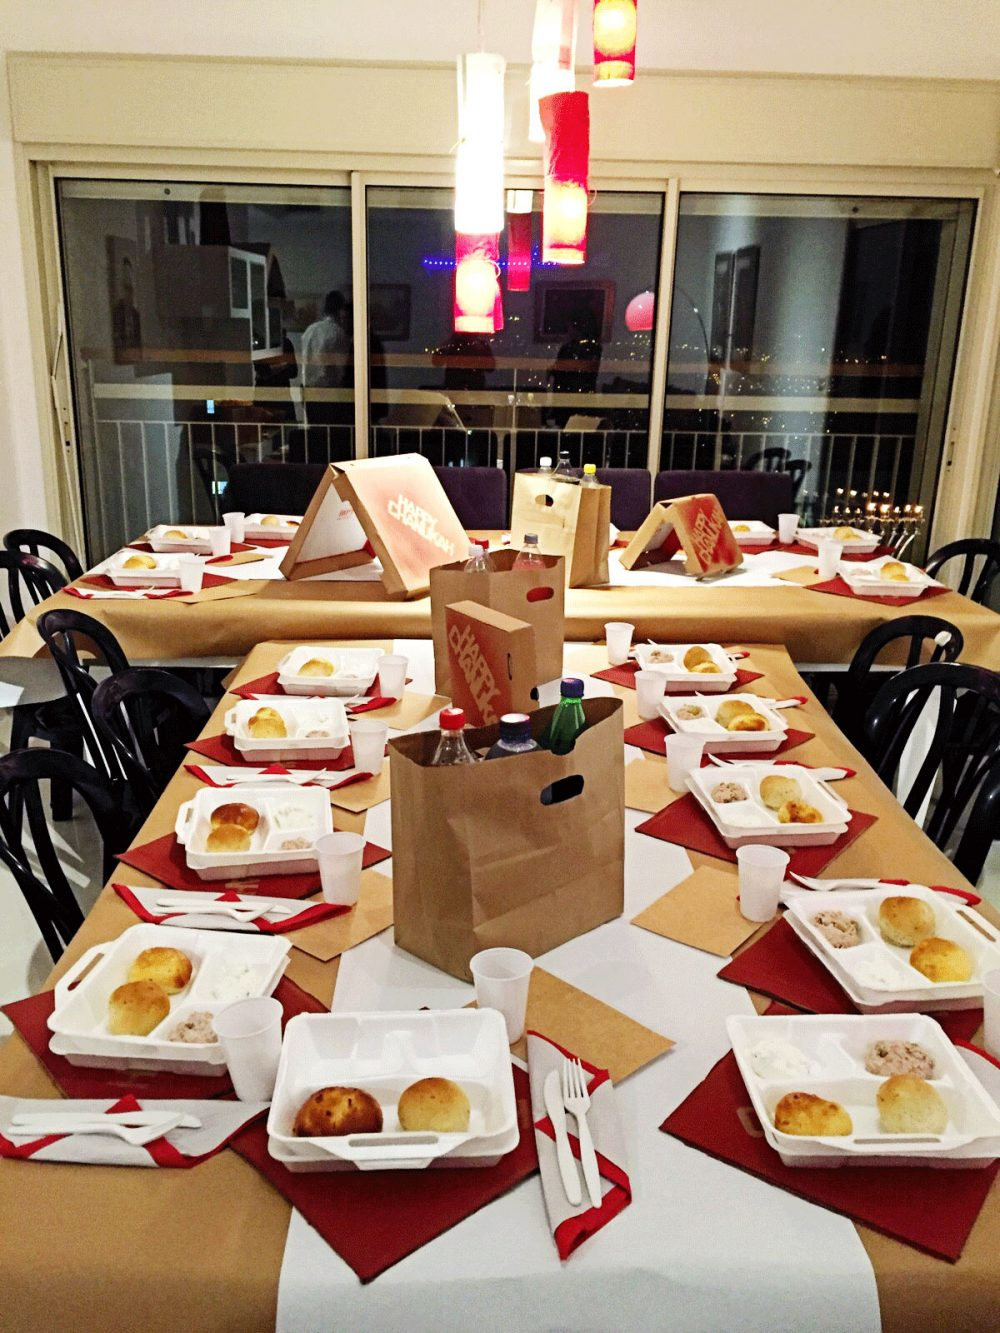 Takeout themed Party. Try this for your next Hannukah party!